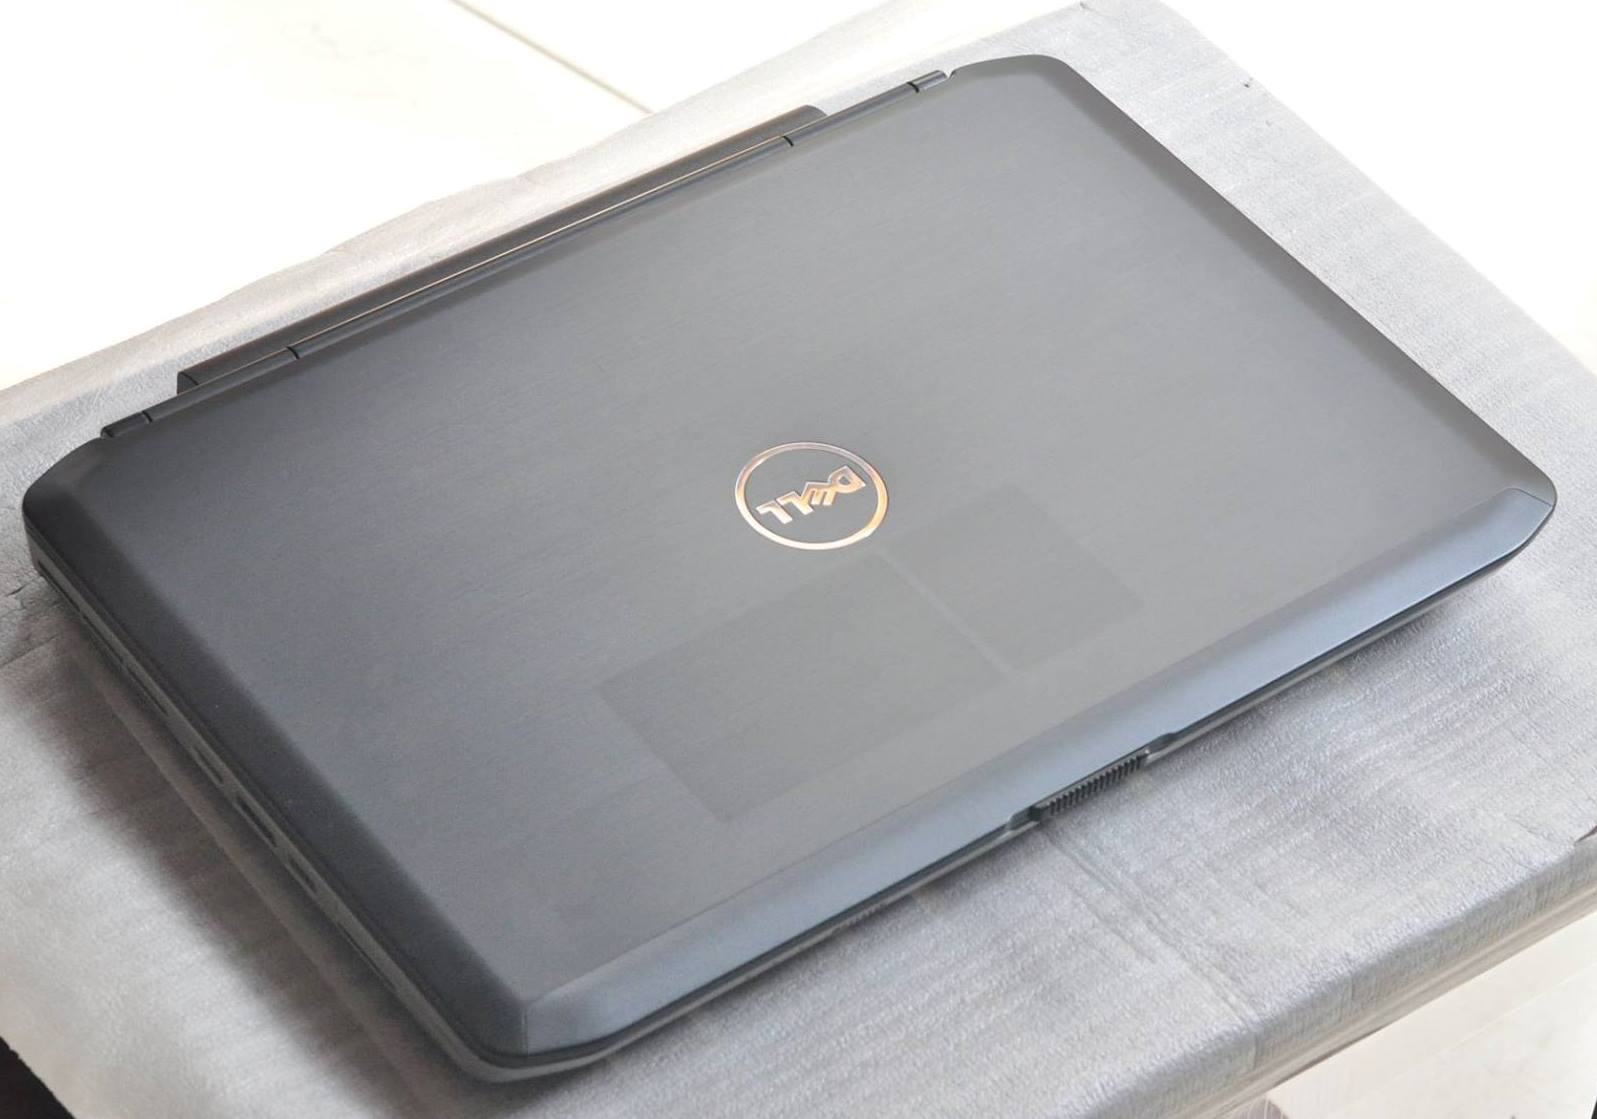 Dell Latitude E5430 i5 3340M_8GB